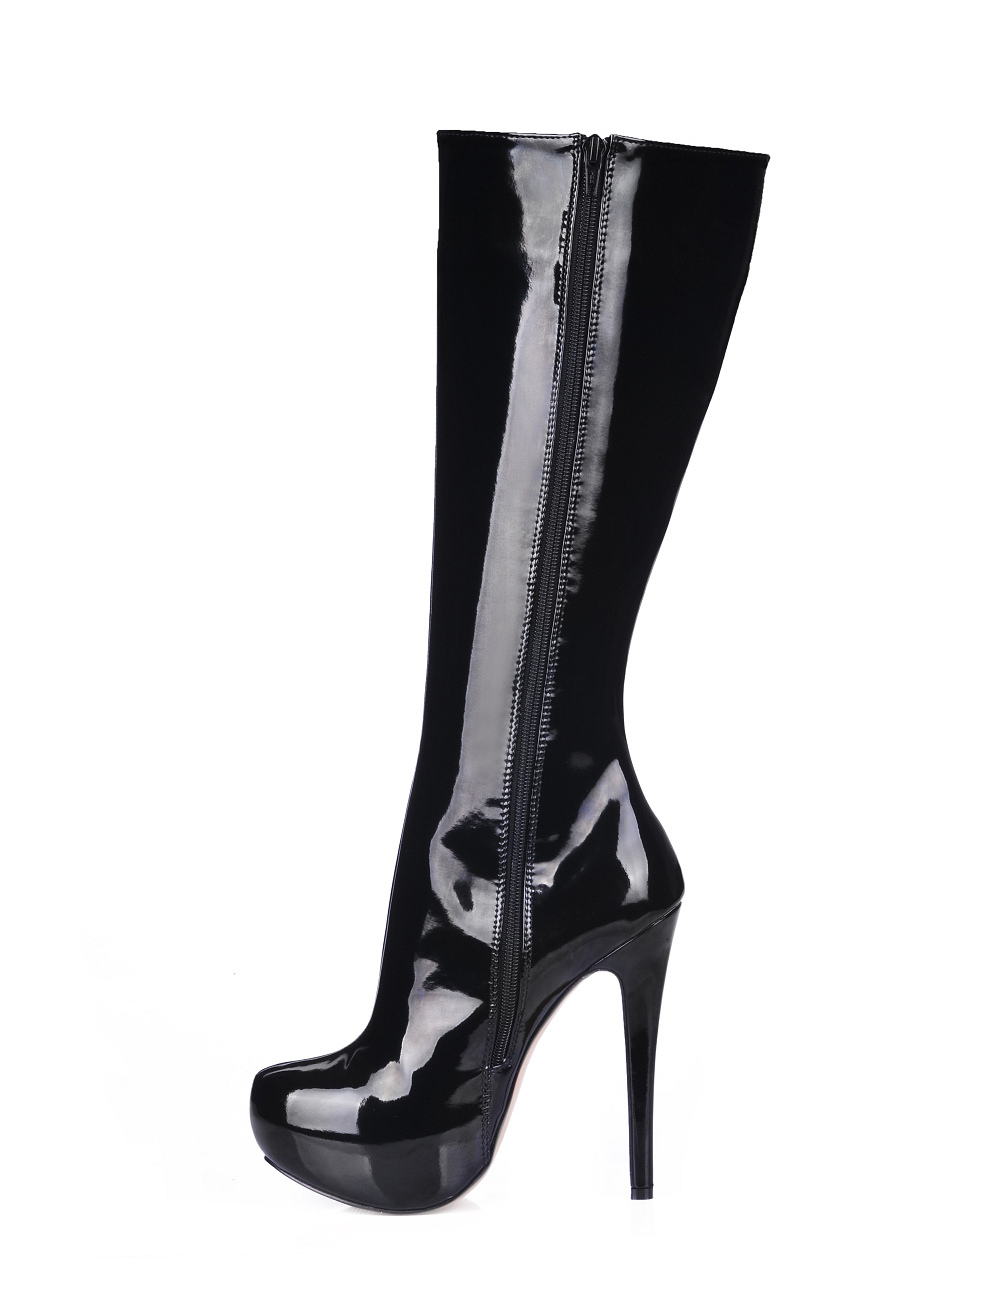 Black High Heel Patent Leather Knee High Boots